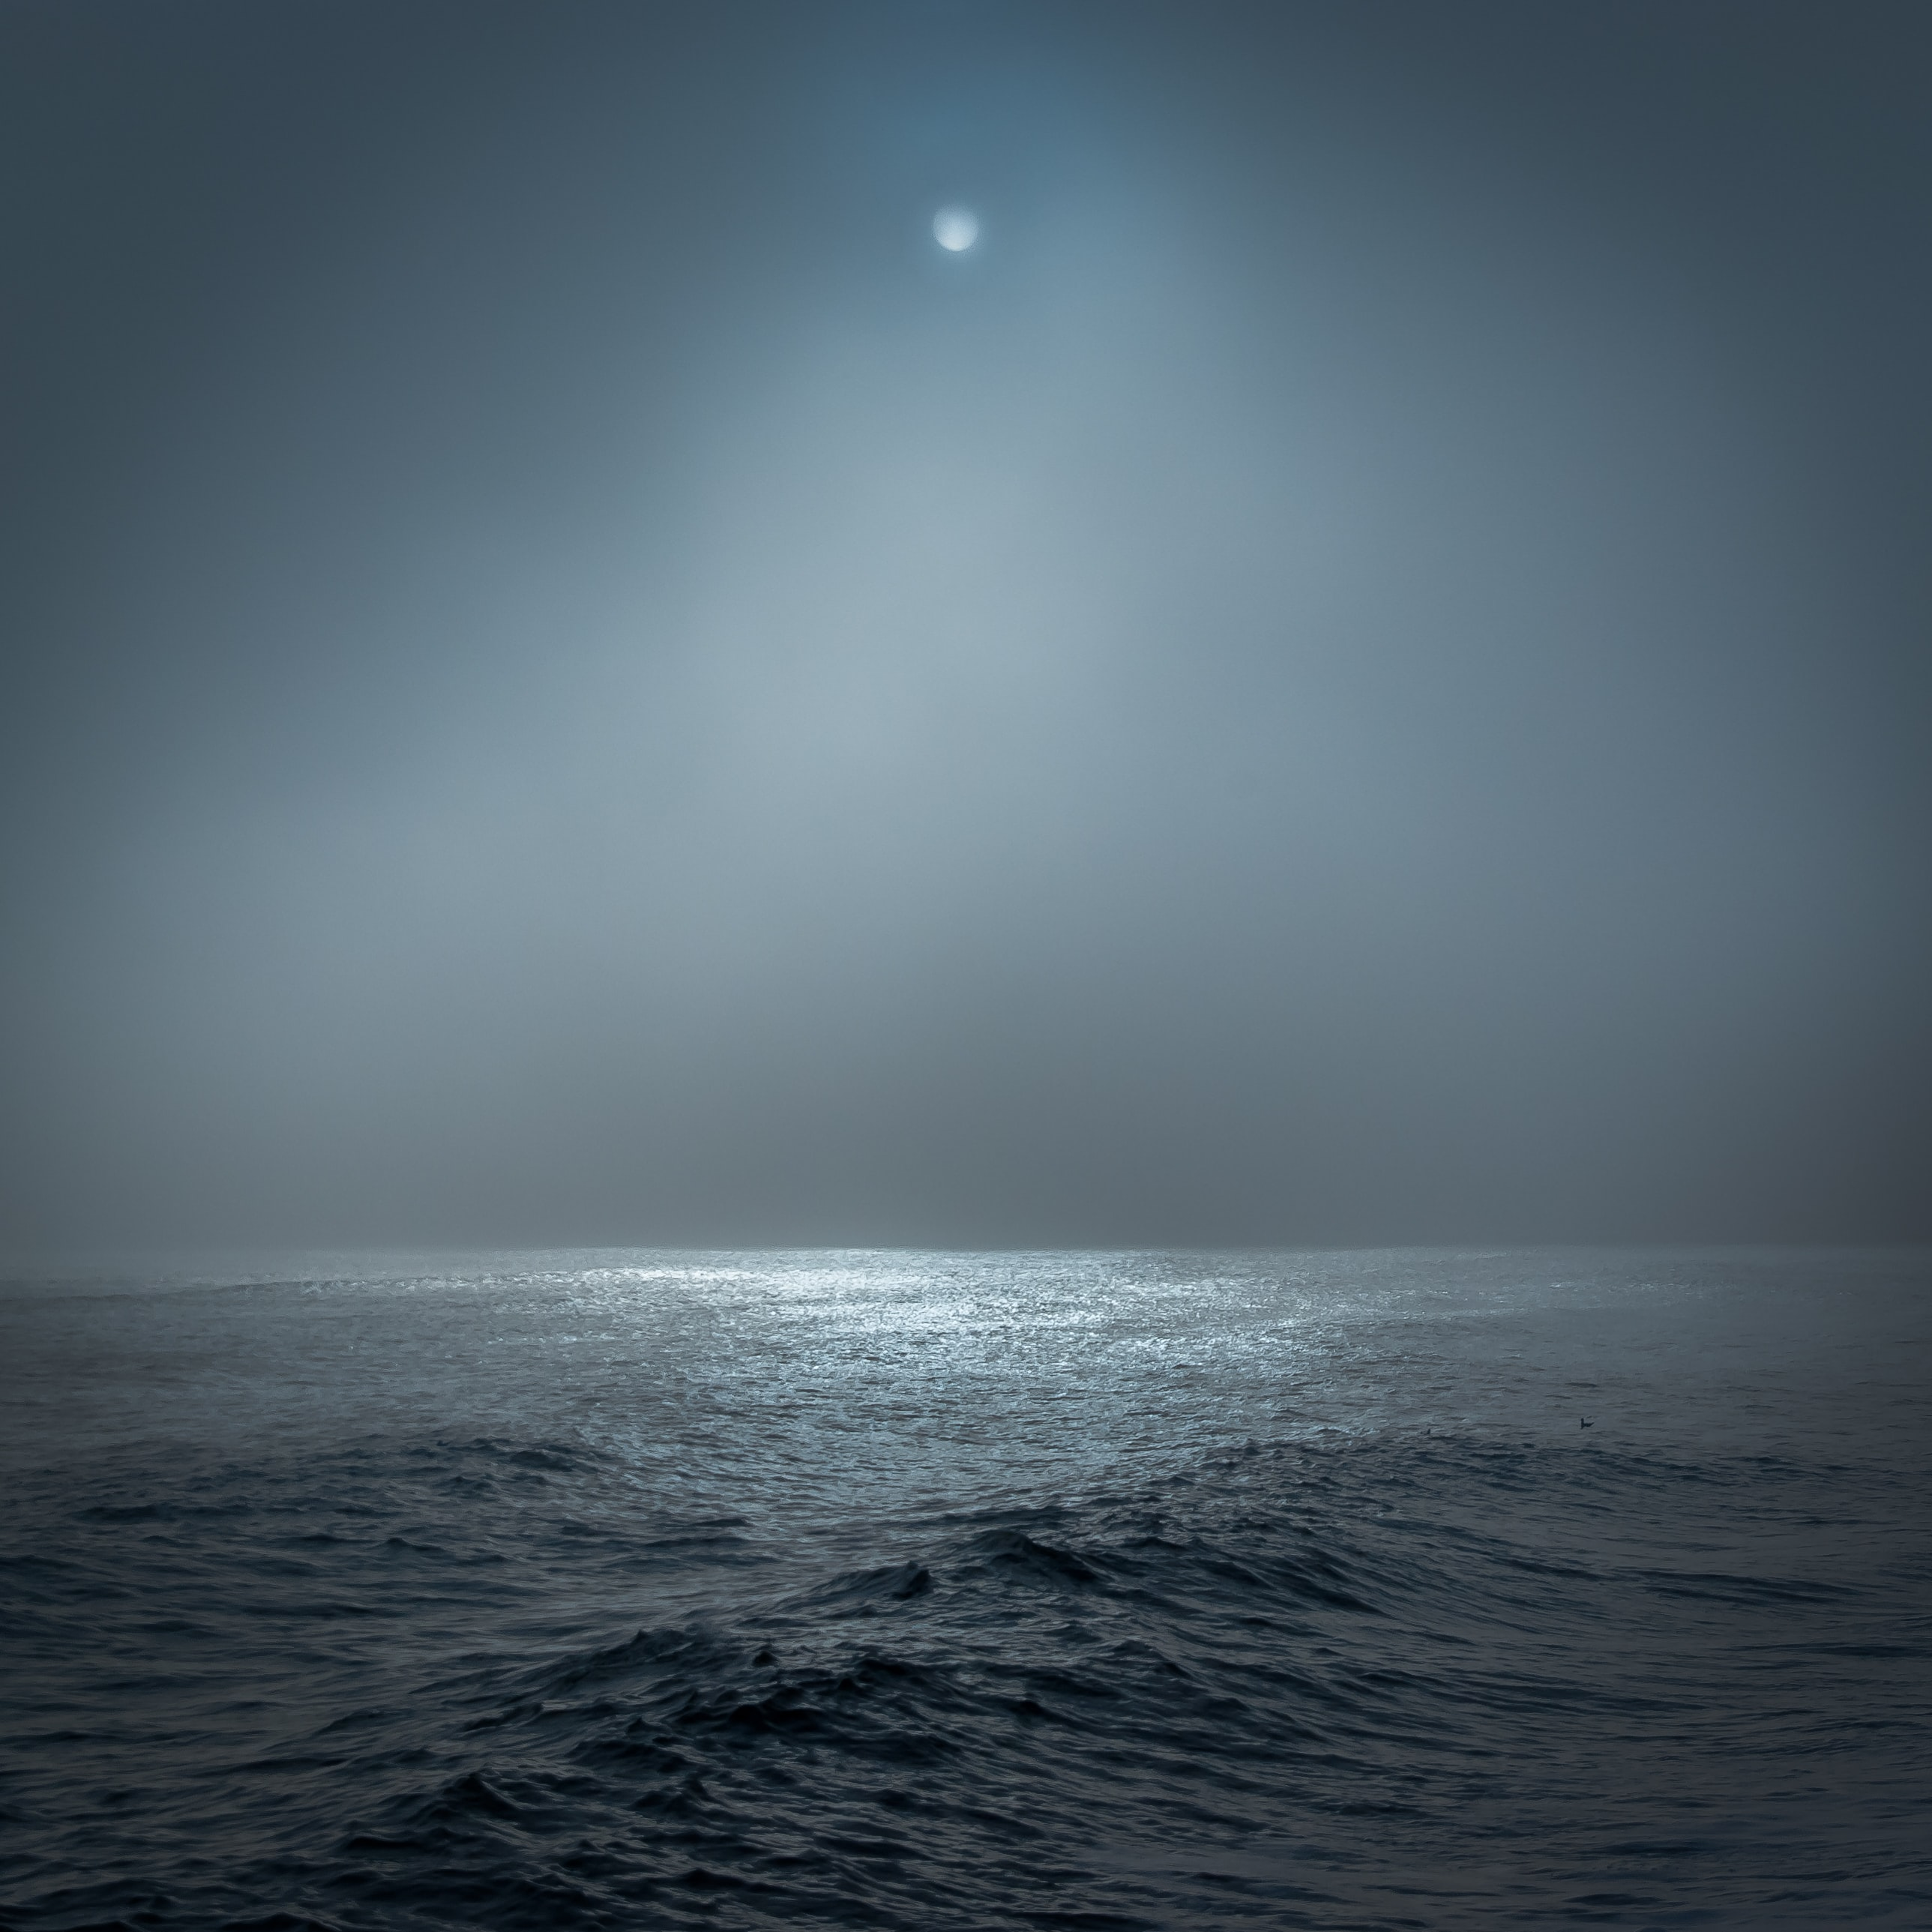 Dim moonlight in the sky over a dark sea